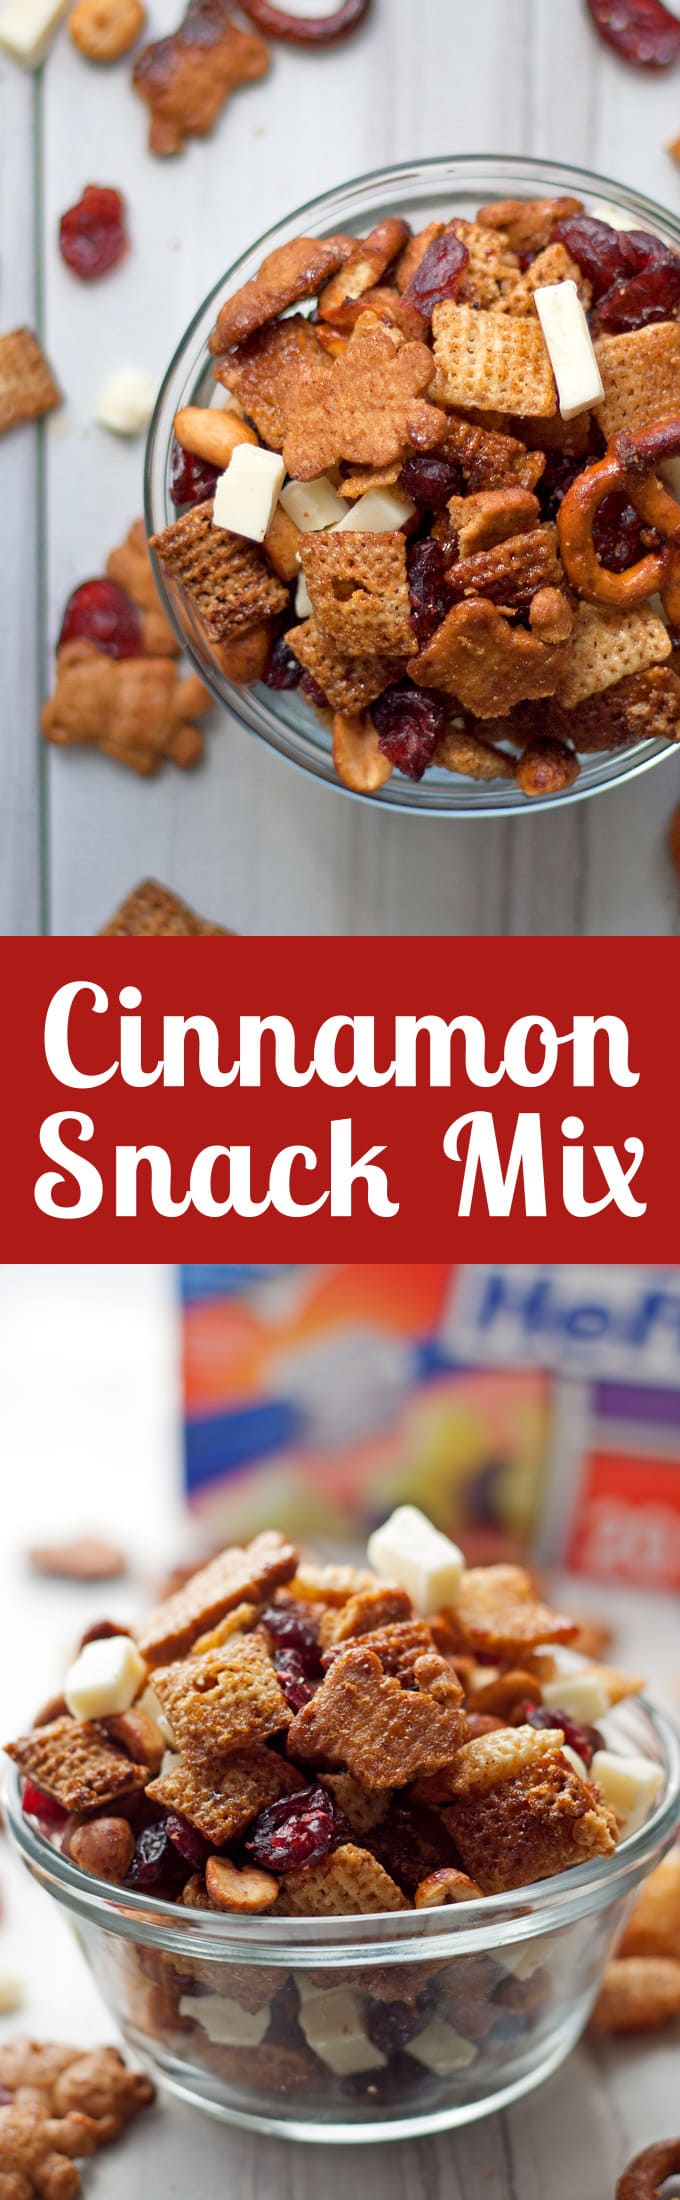 Try this cinnamon snack mix recipe - full of rice cereal, pretzels, graham crackers, cranberries and white chocolate! | honeyandbirch.com